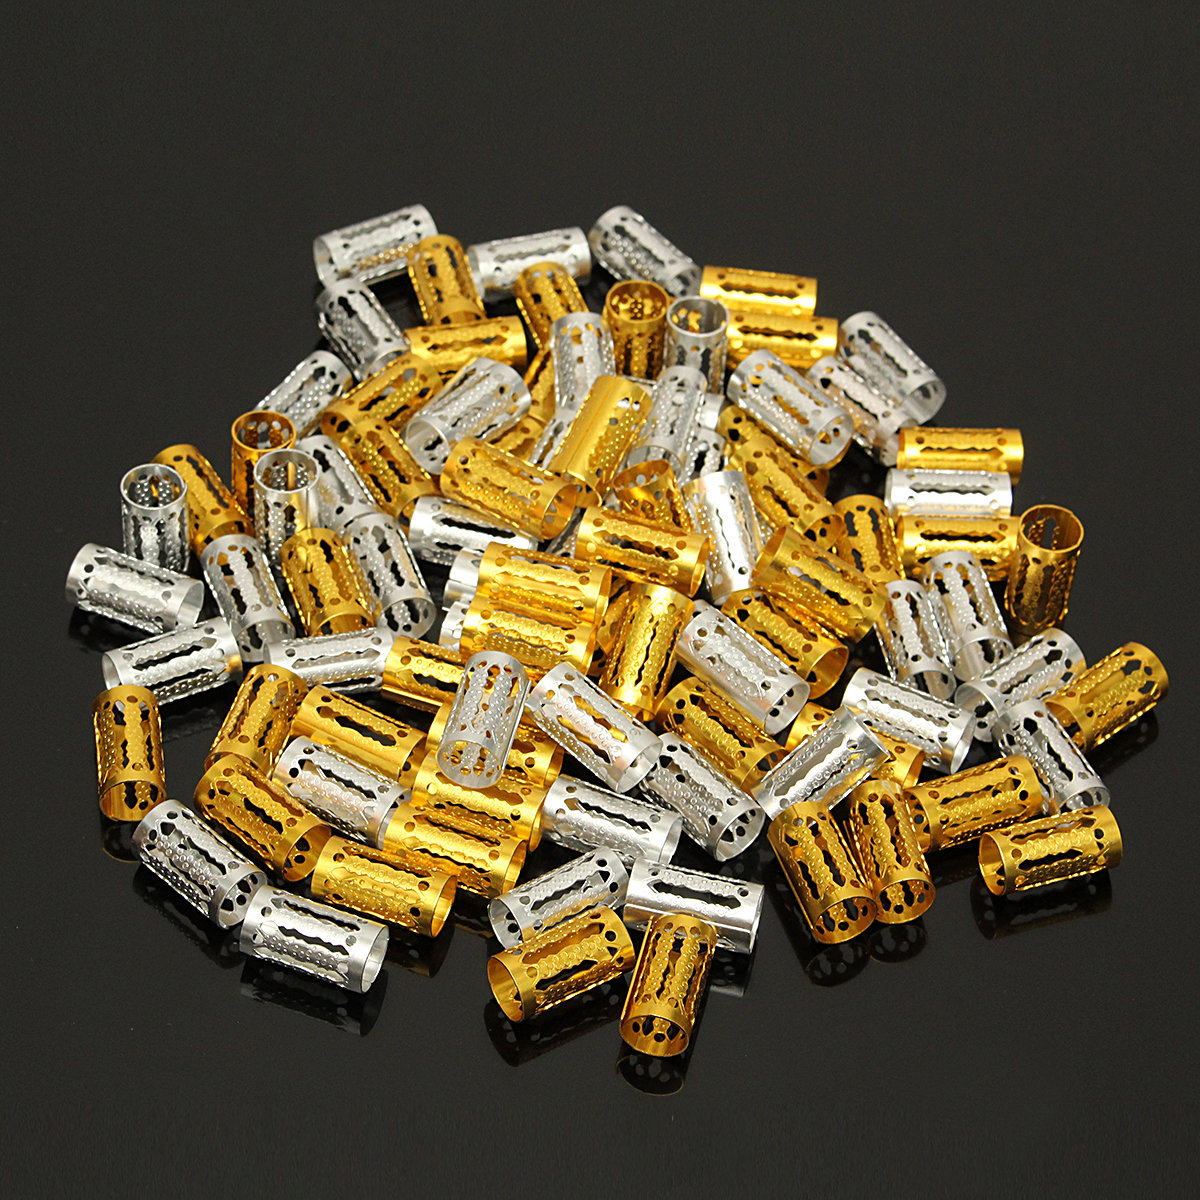 100Pcs Long Hair Beads For Braids Aluminum Metal Base Dreadlocks Extensions Silver Gold